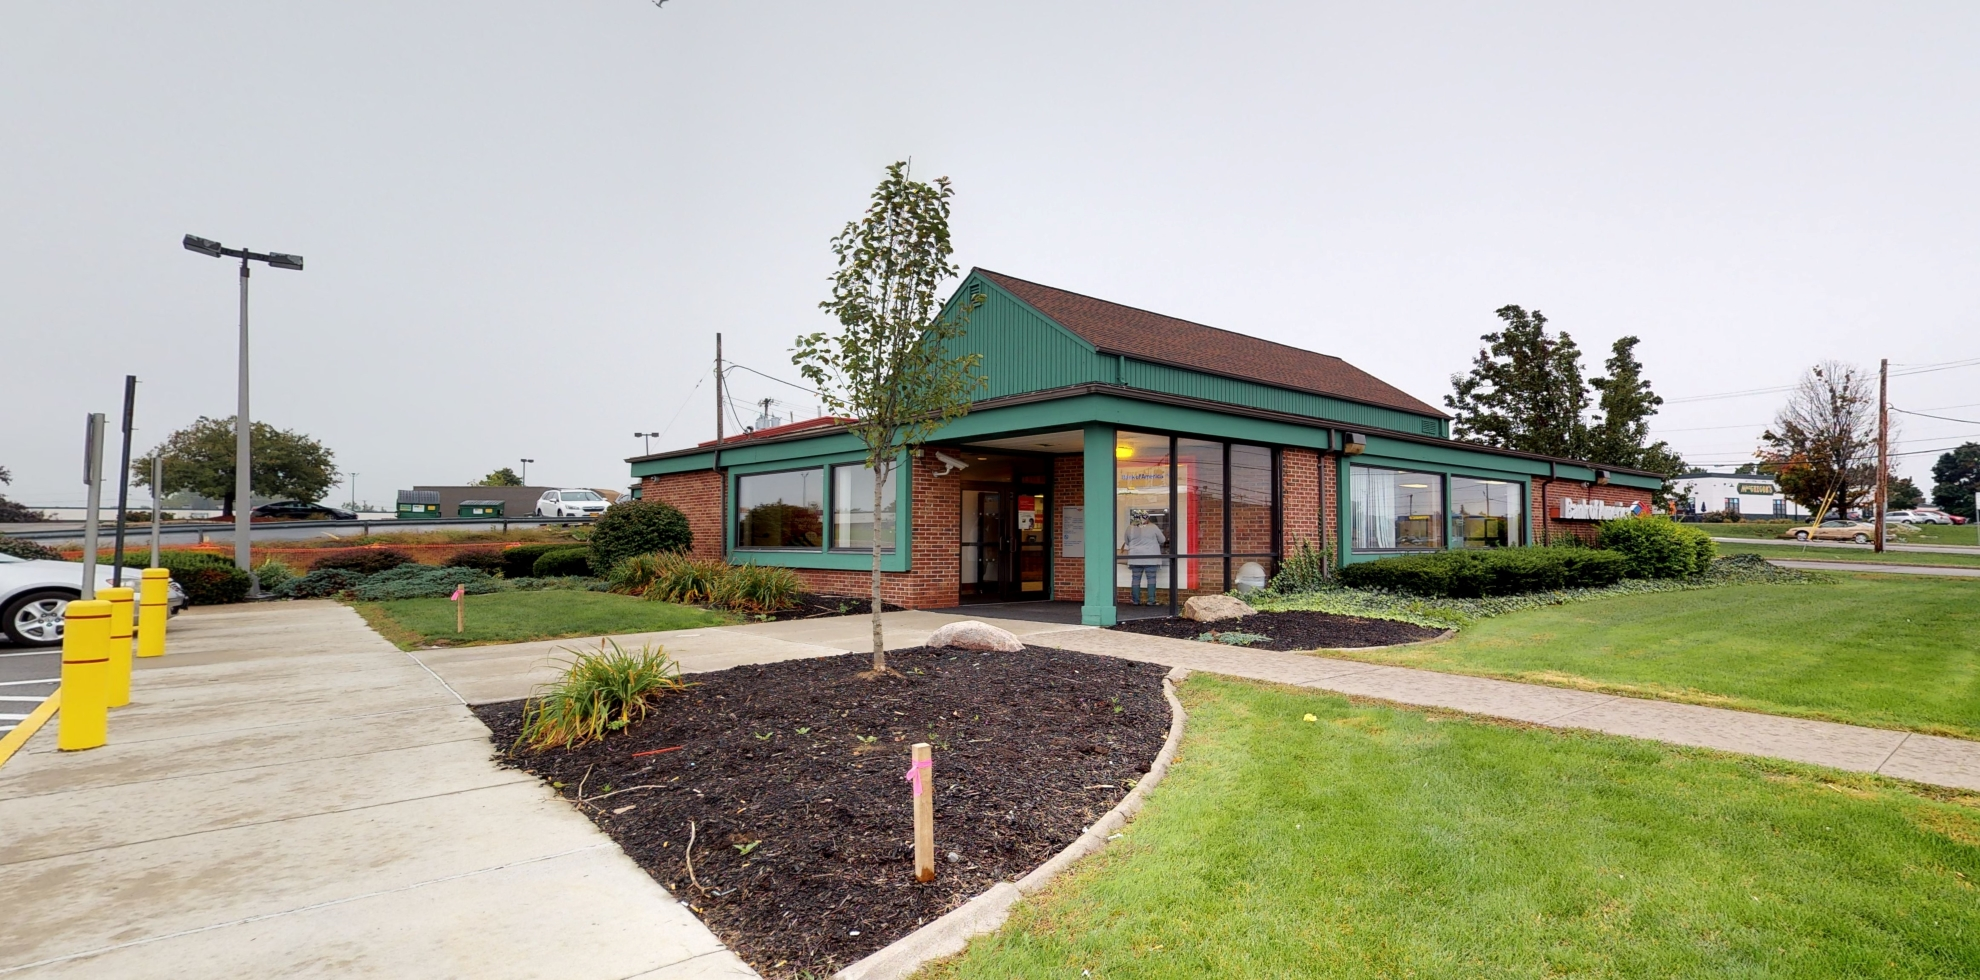 Bank of America financial center with drive-thru ATM   100 Pixley Rd, Rochester, NY 14624